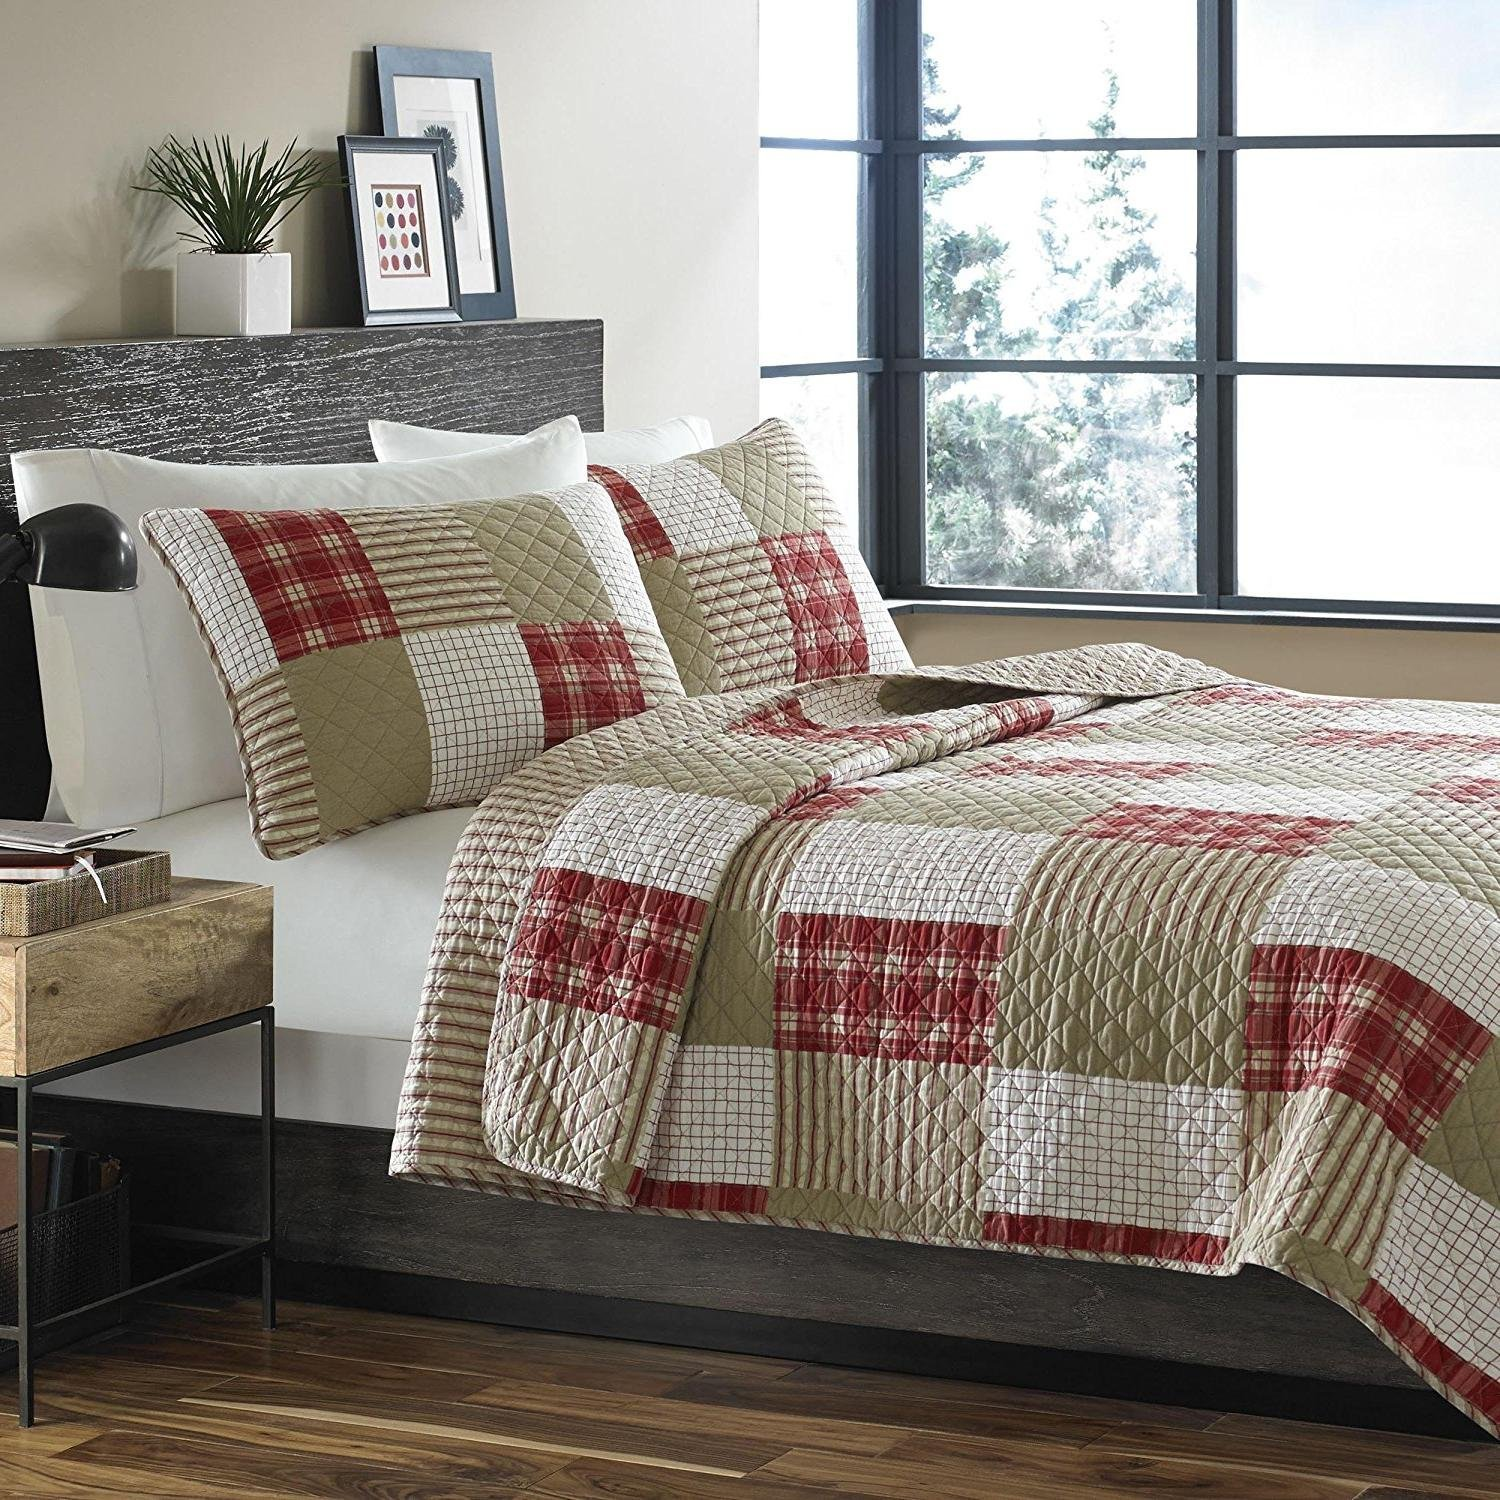 MISC 3pc Red Patchwork Full Queen Size Quilt, Square Rectangle Country Cottage Cabin Classic Themed, Patch Work, Cotton, White Beige Plaid Rugby Striped